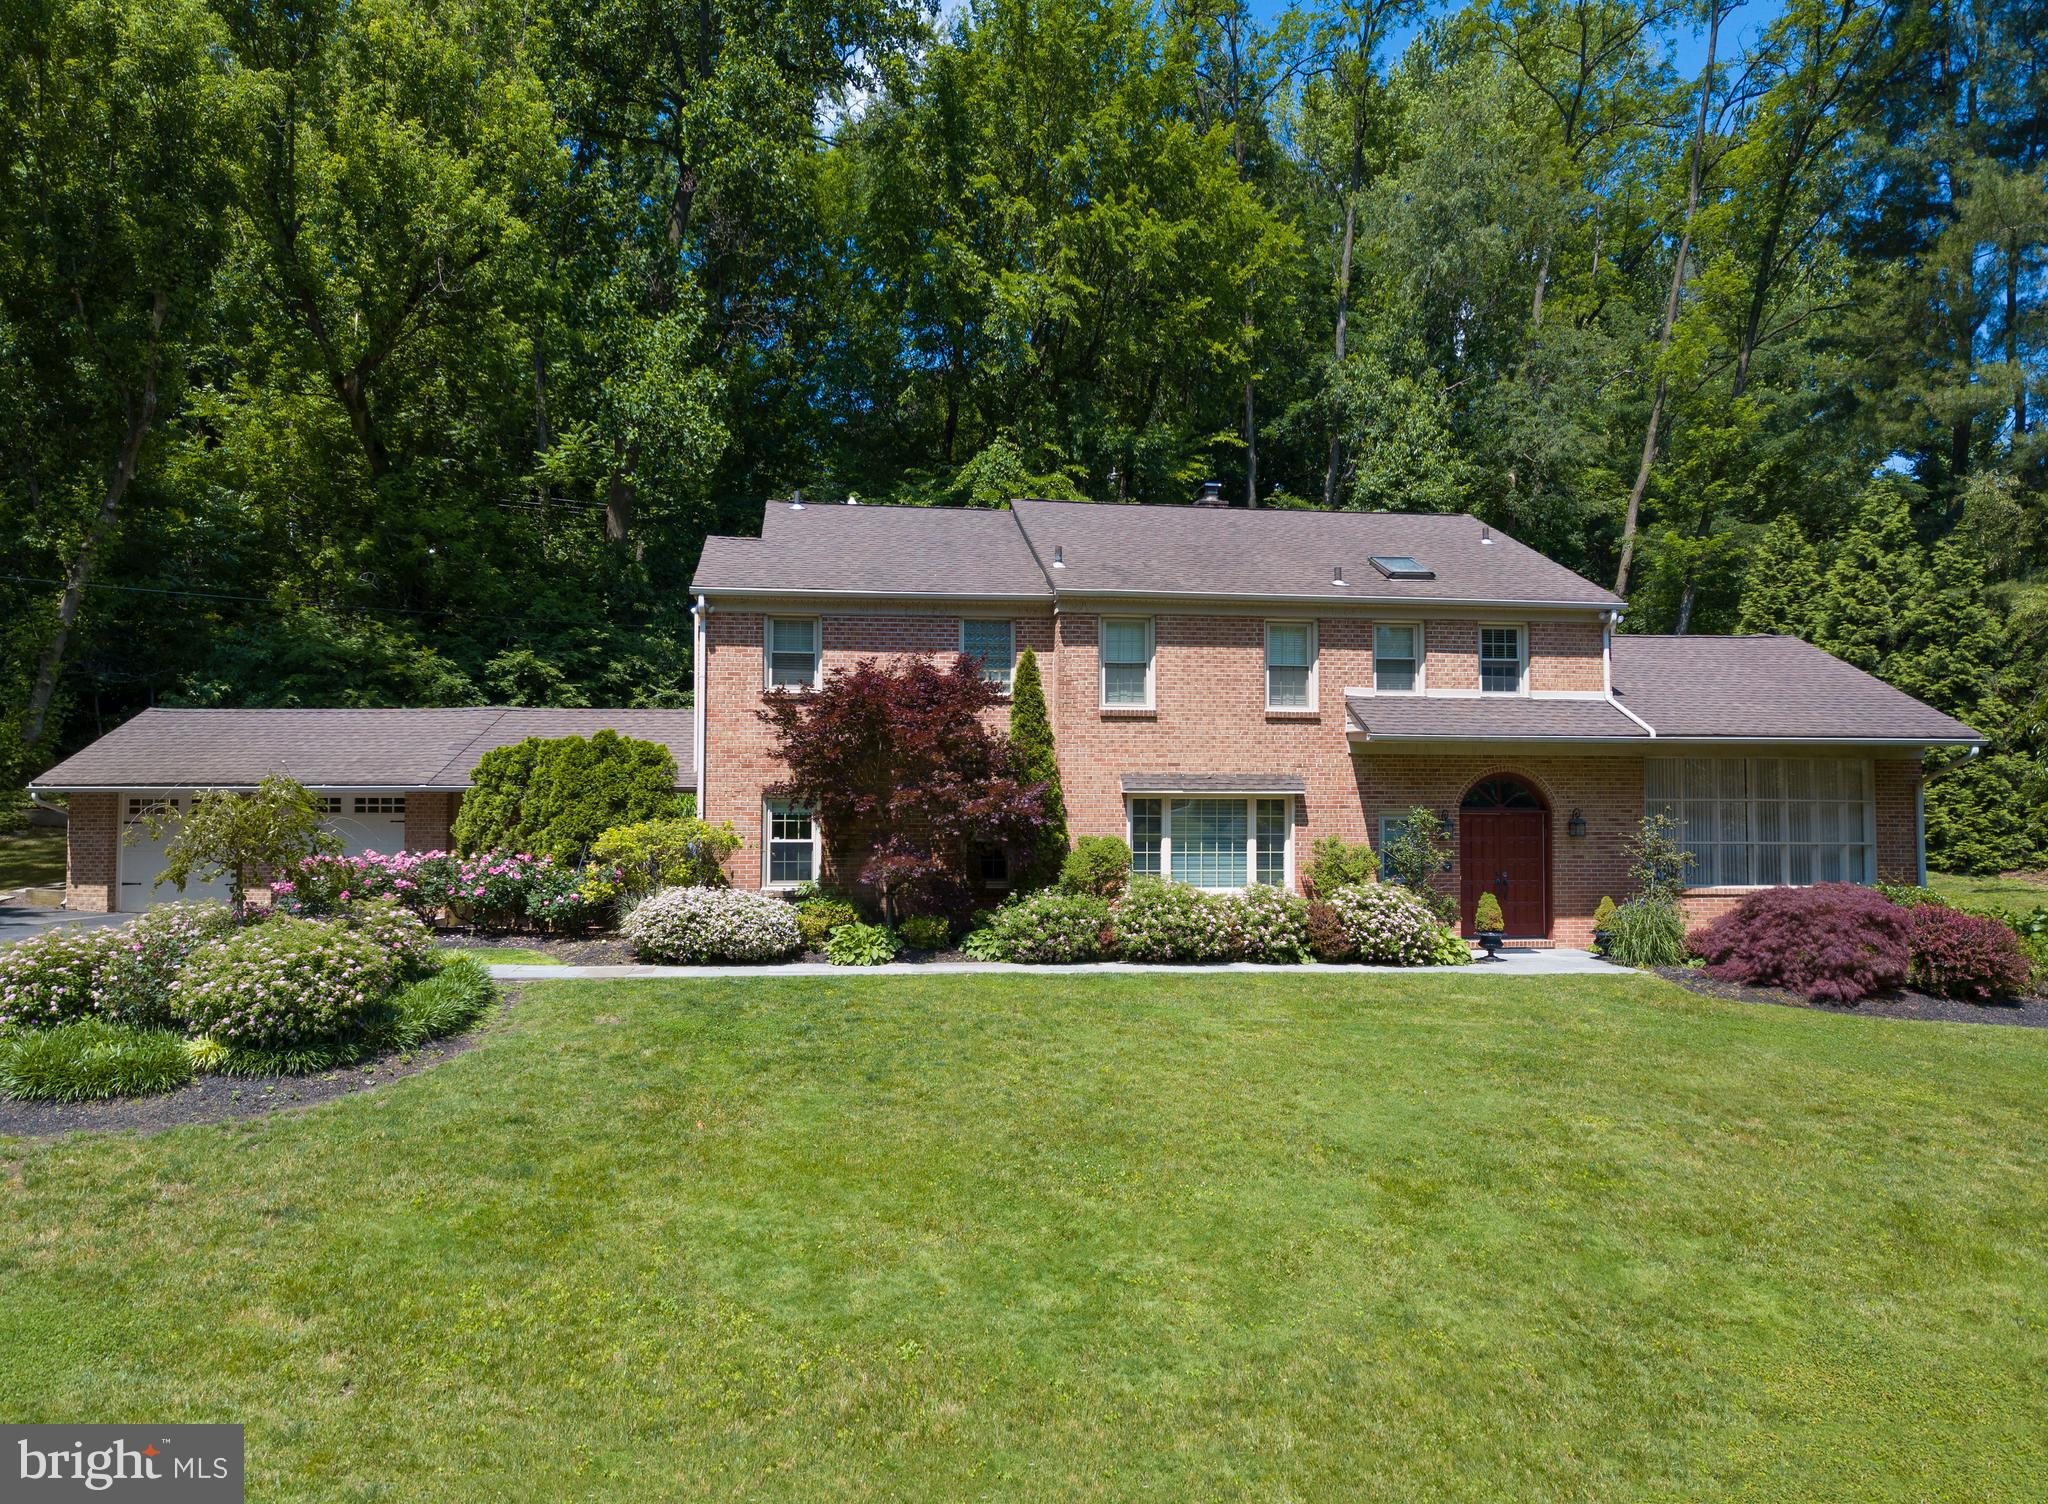 1134 CENTENNIAL ROAD, NARBERTH, PA 19072